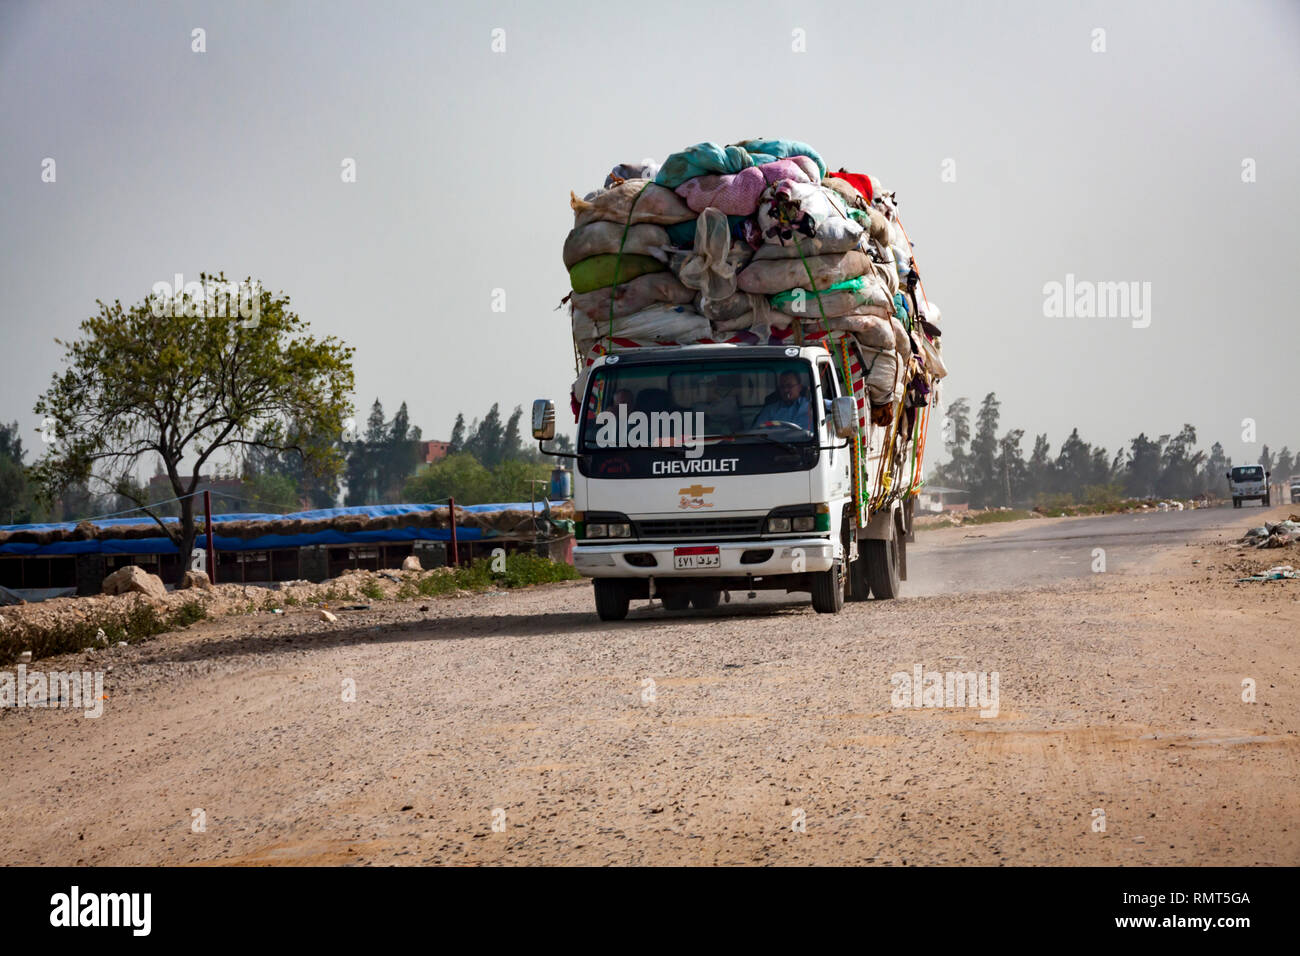 Kafr-El-Sheikh, Egypt - 3 March 2014: A truck overloaded with garbage bags passing through farmland heading for landfill site in Egypt. - Stock Image